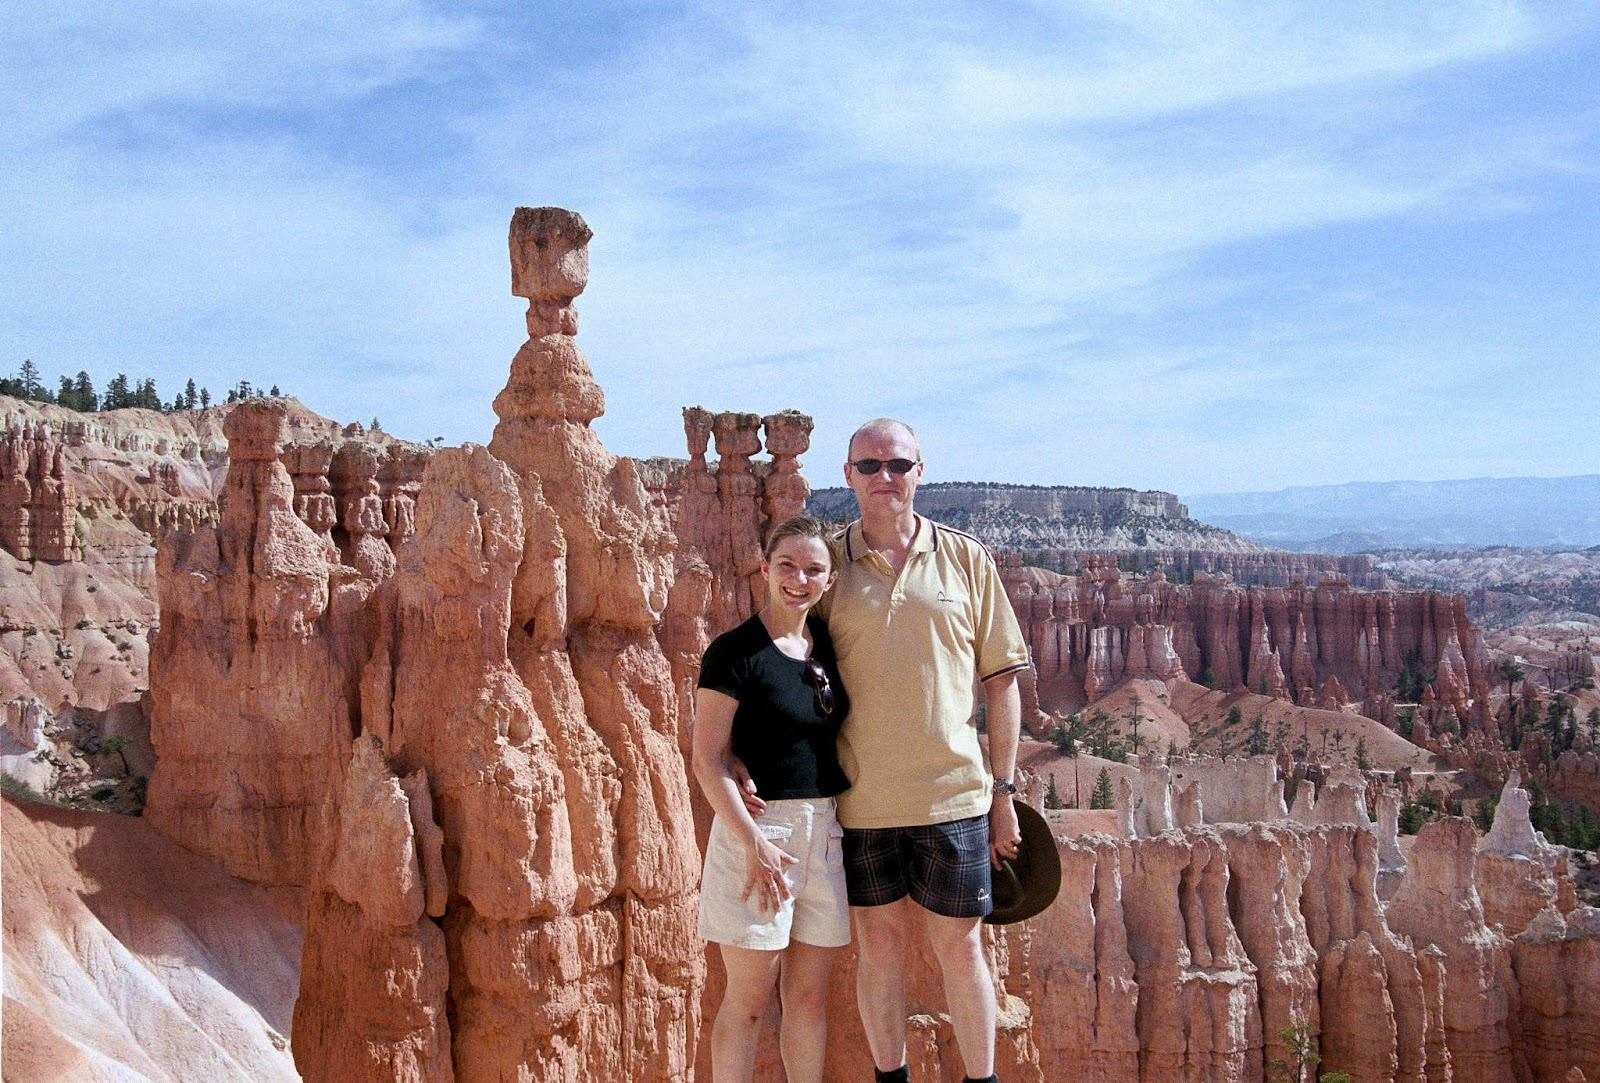 Us and Some Hoodoos